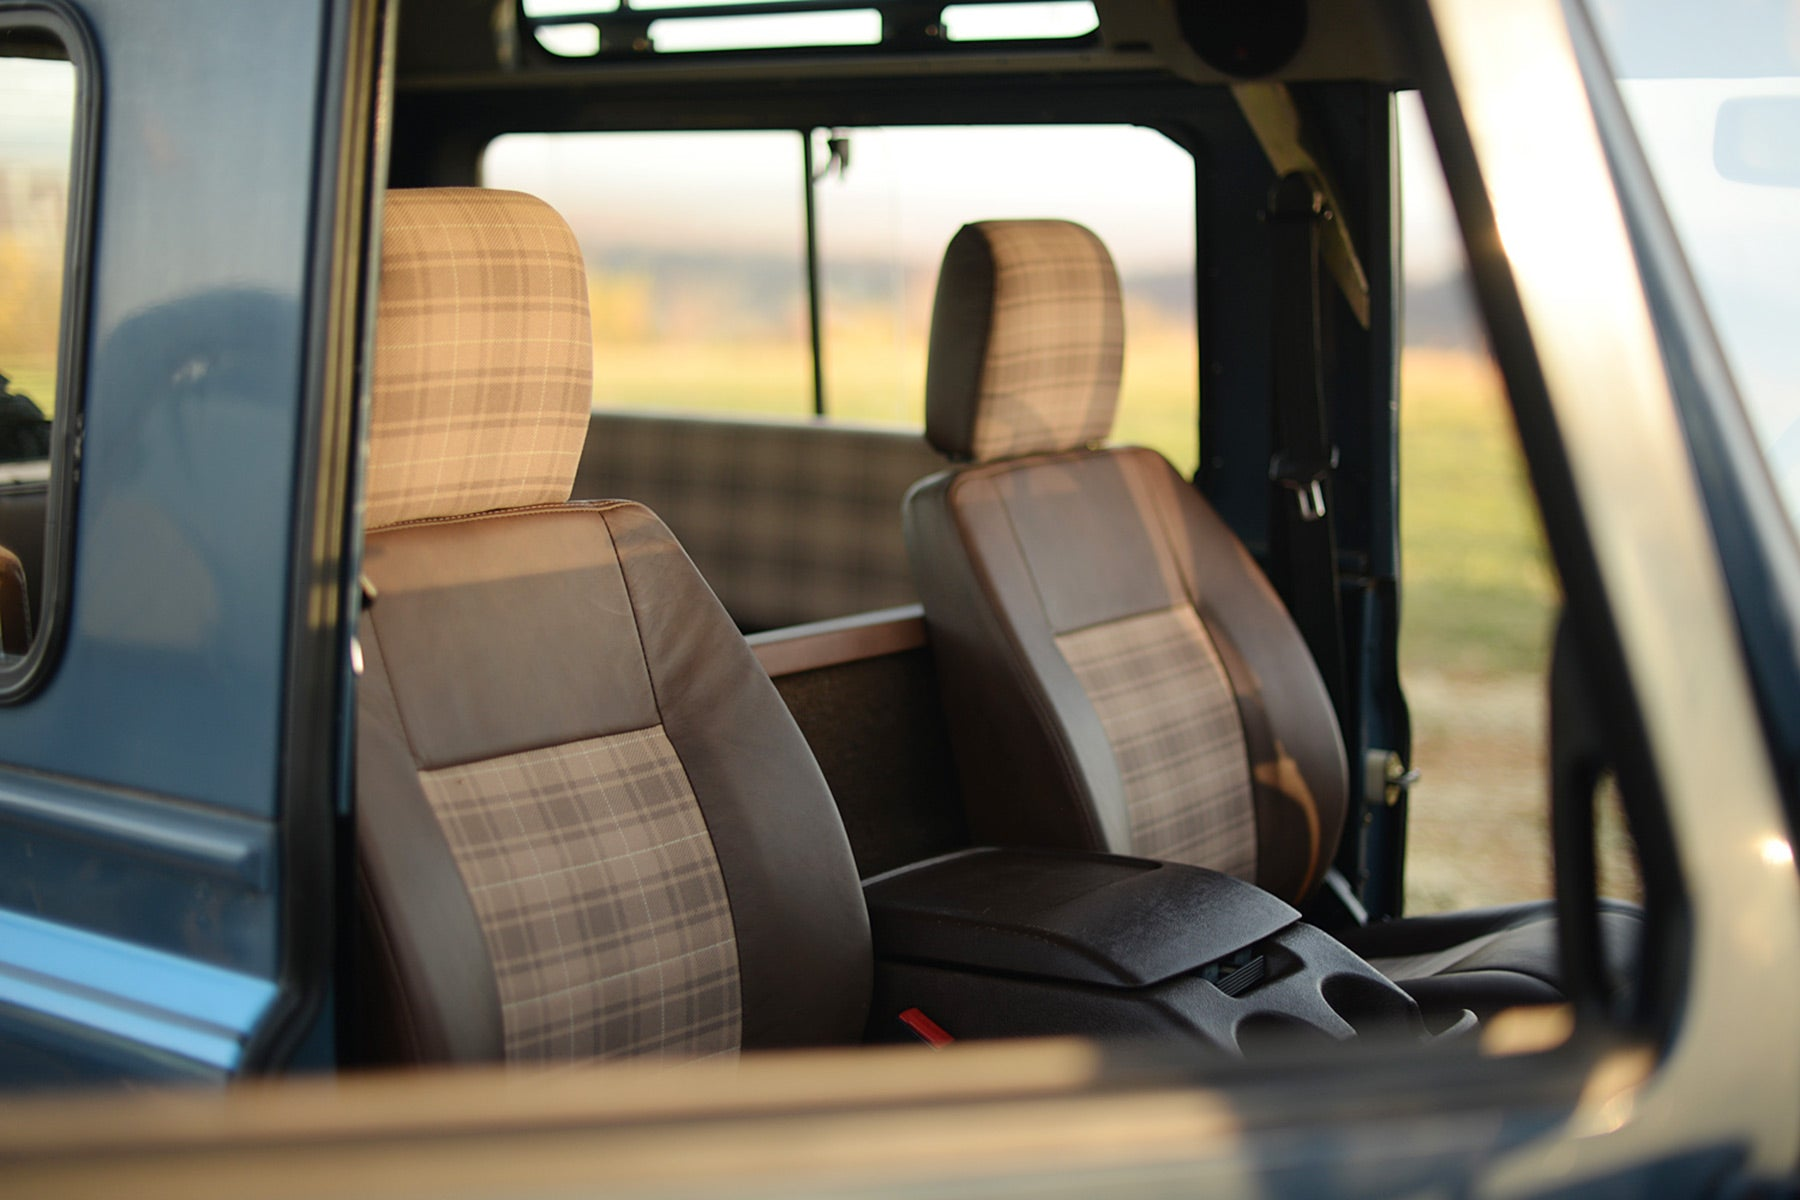 Relicate Leather Land Rover Defender interior with plaid cloth inserts